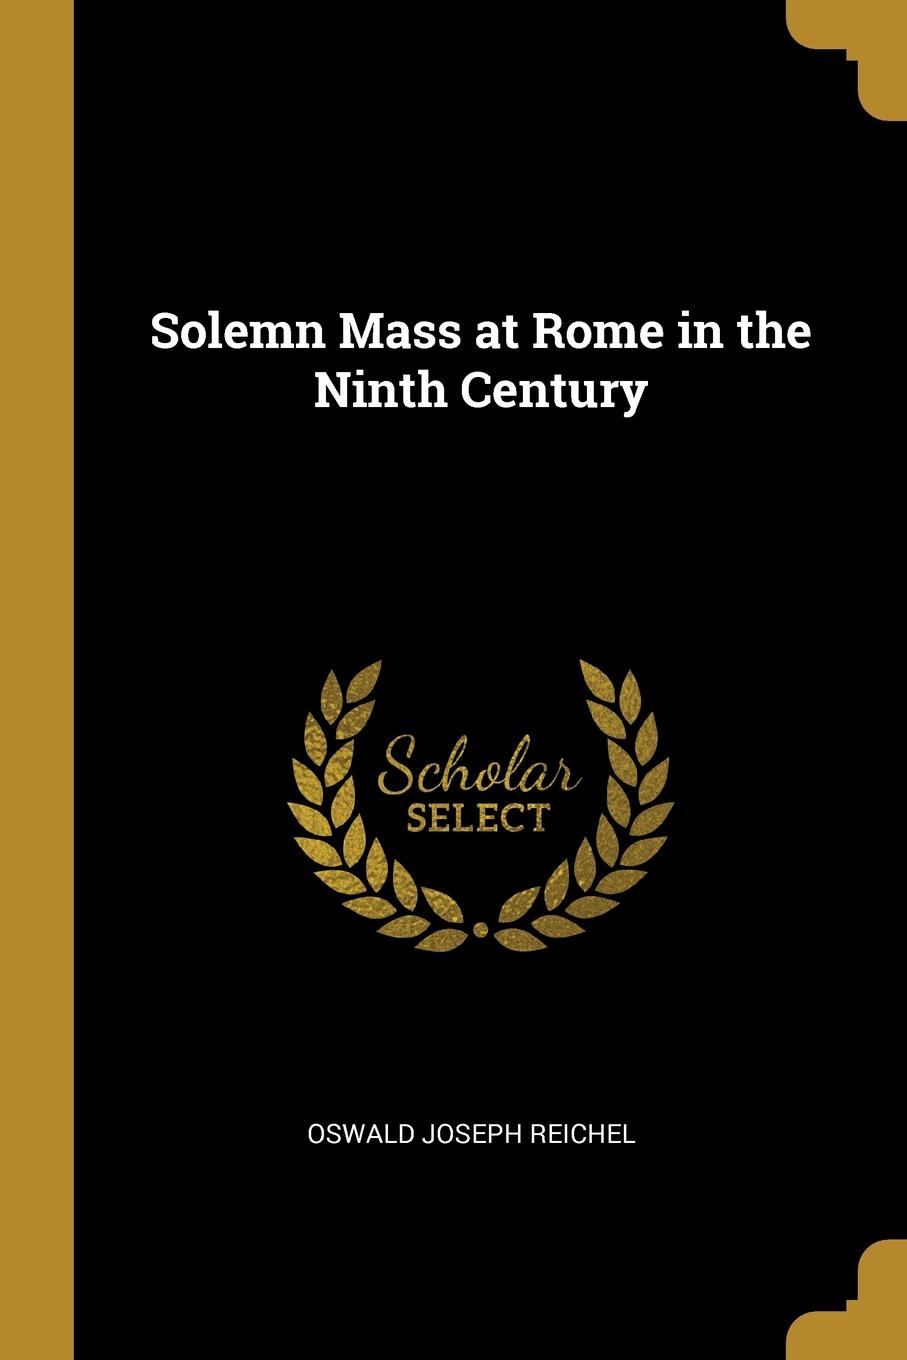 Фото - Oswald Joseph Reichel Solemn Mass at Rome in the Ninth Century oswald j reichel solemn mass at rome